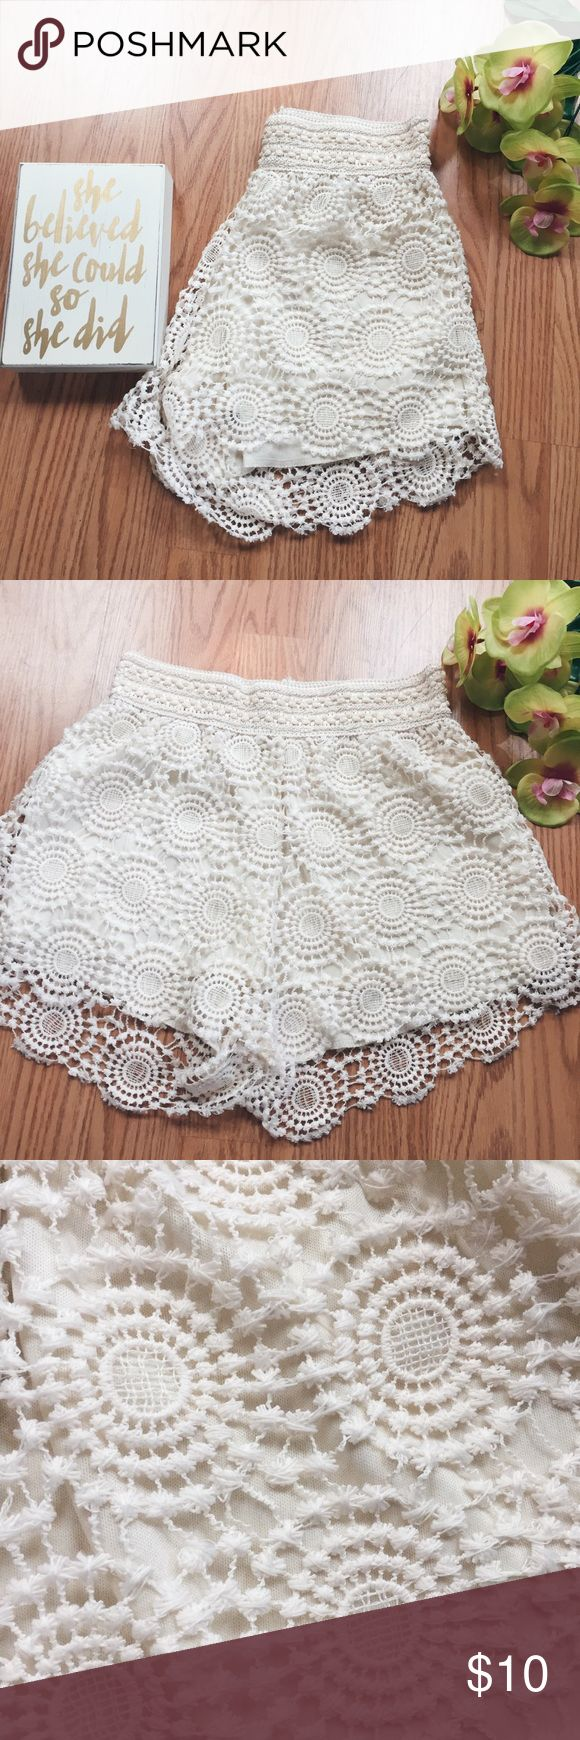 🔳 Cream Lace Shorts 🔳 🔳Product Description🔳 ▫️Comfy and sweet polyester lined lace shorts  ▫️Lace pinwheel pattern is in perfect condition with no rips  ▫️Elastic waist that fits high waisted  ▫️Lace is longer than the lining ▫️Purchased from T.J. Maxx  Measurements:  ▫️Waist- 24 inches  ▫️Length (lace, lining)- 14 inches, 12 inches   ⭐️See Buyer Guarantee ⭐️  ⚡️Follow my insta for the non-Poshmark side of my life⚡️----> @hayleysforsblom Shorts